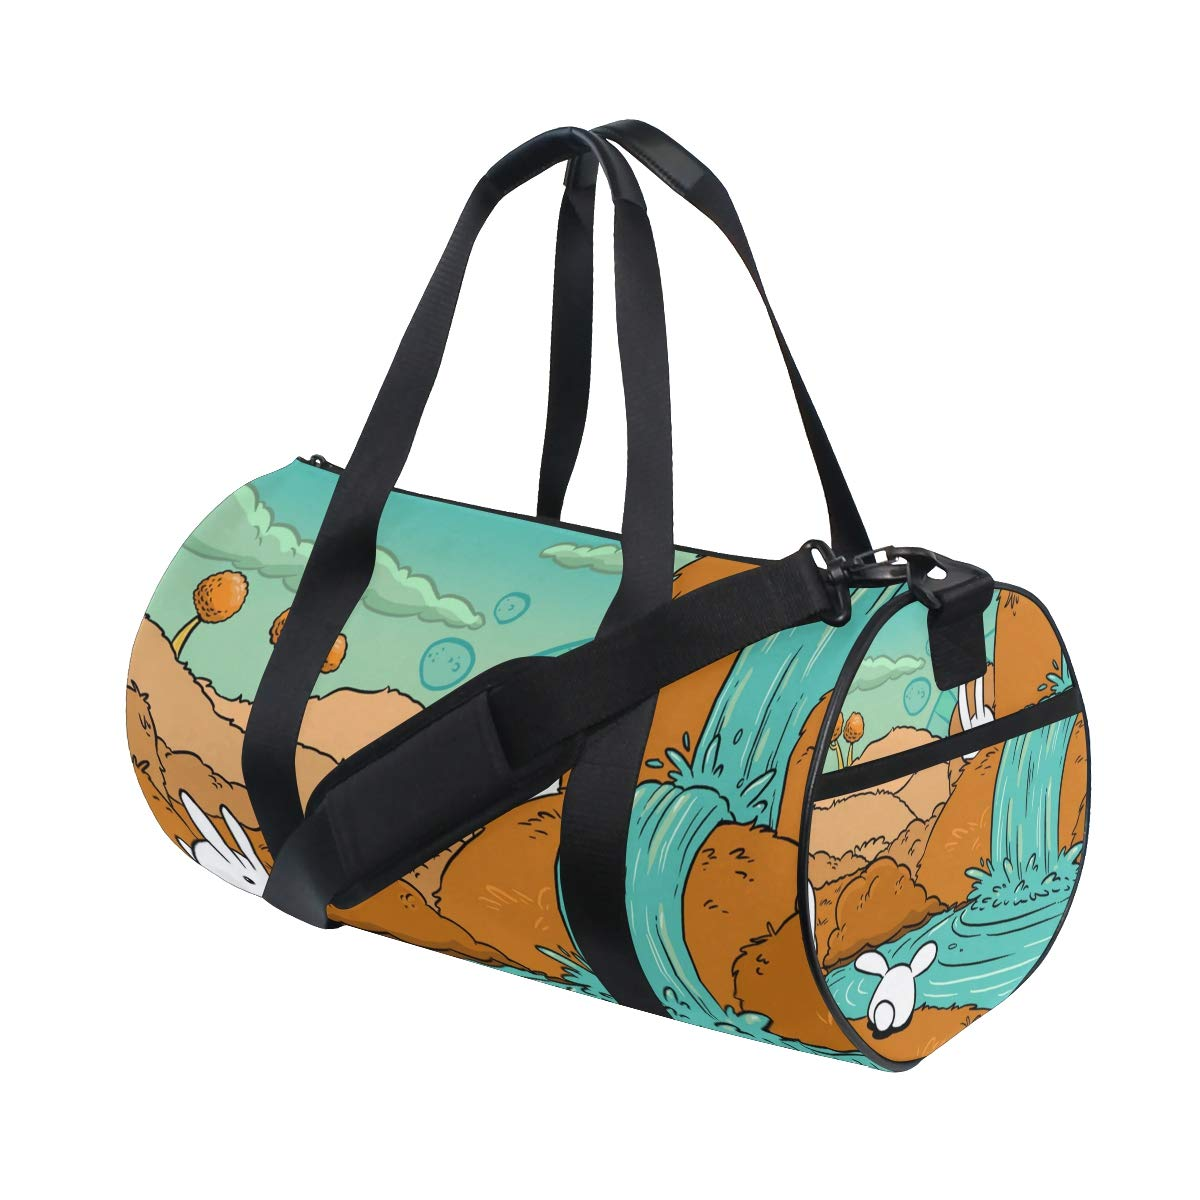 oulianスポーツバッグAfrica Ribbons Mens Duffle Luggage TravelバッグKid軽量ジムバッグ One Size picture8 B07G5CQ8T3